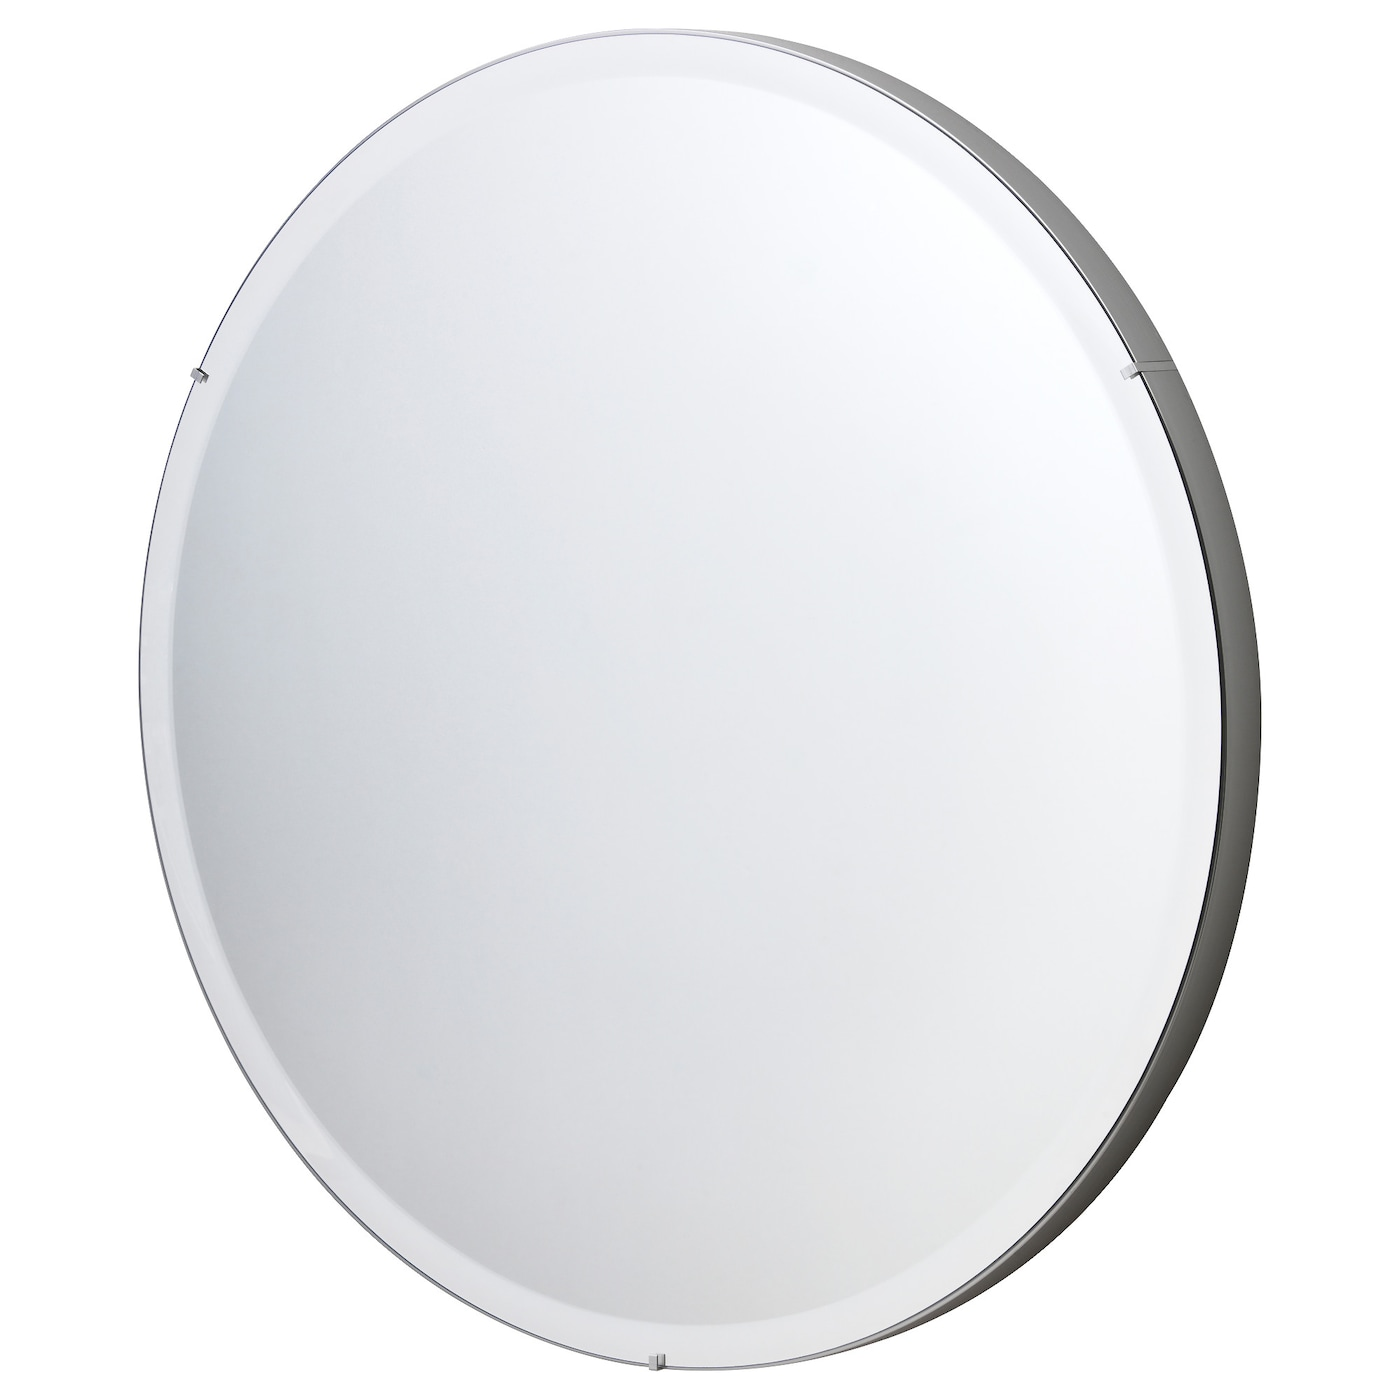 Ikea Poang Chair Leather Cushion ~ IKEA RONGLAN mirror Provided with safety film  reduces damage if